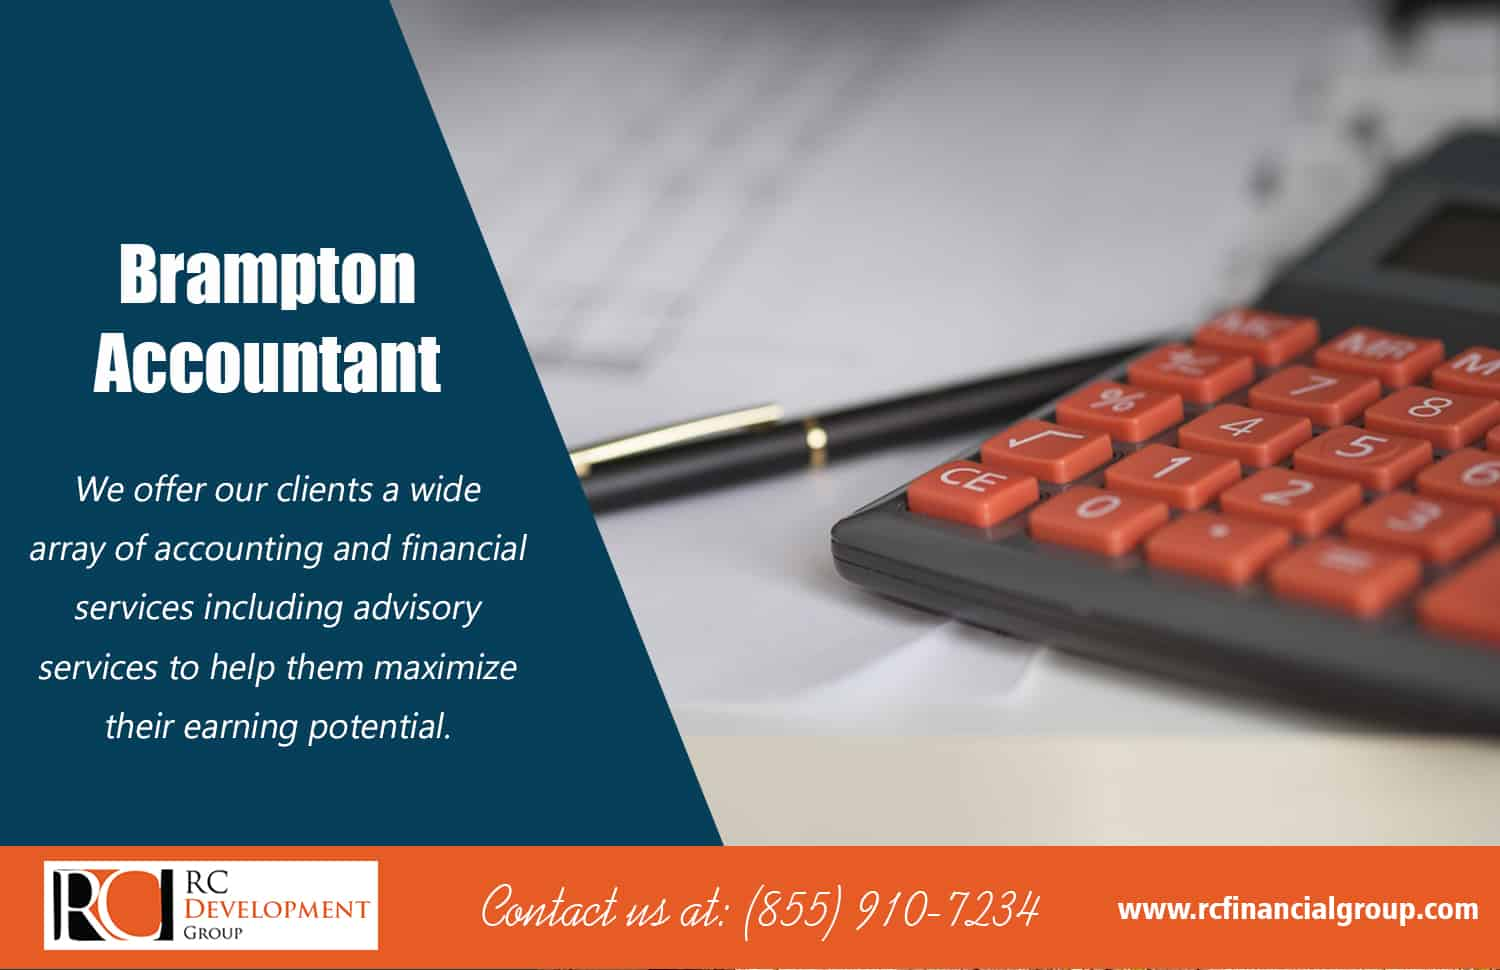 best accountants in brampton